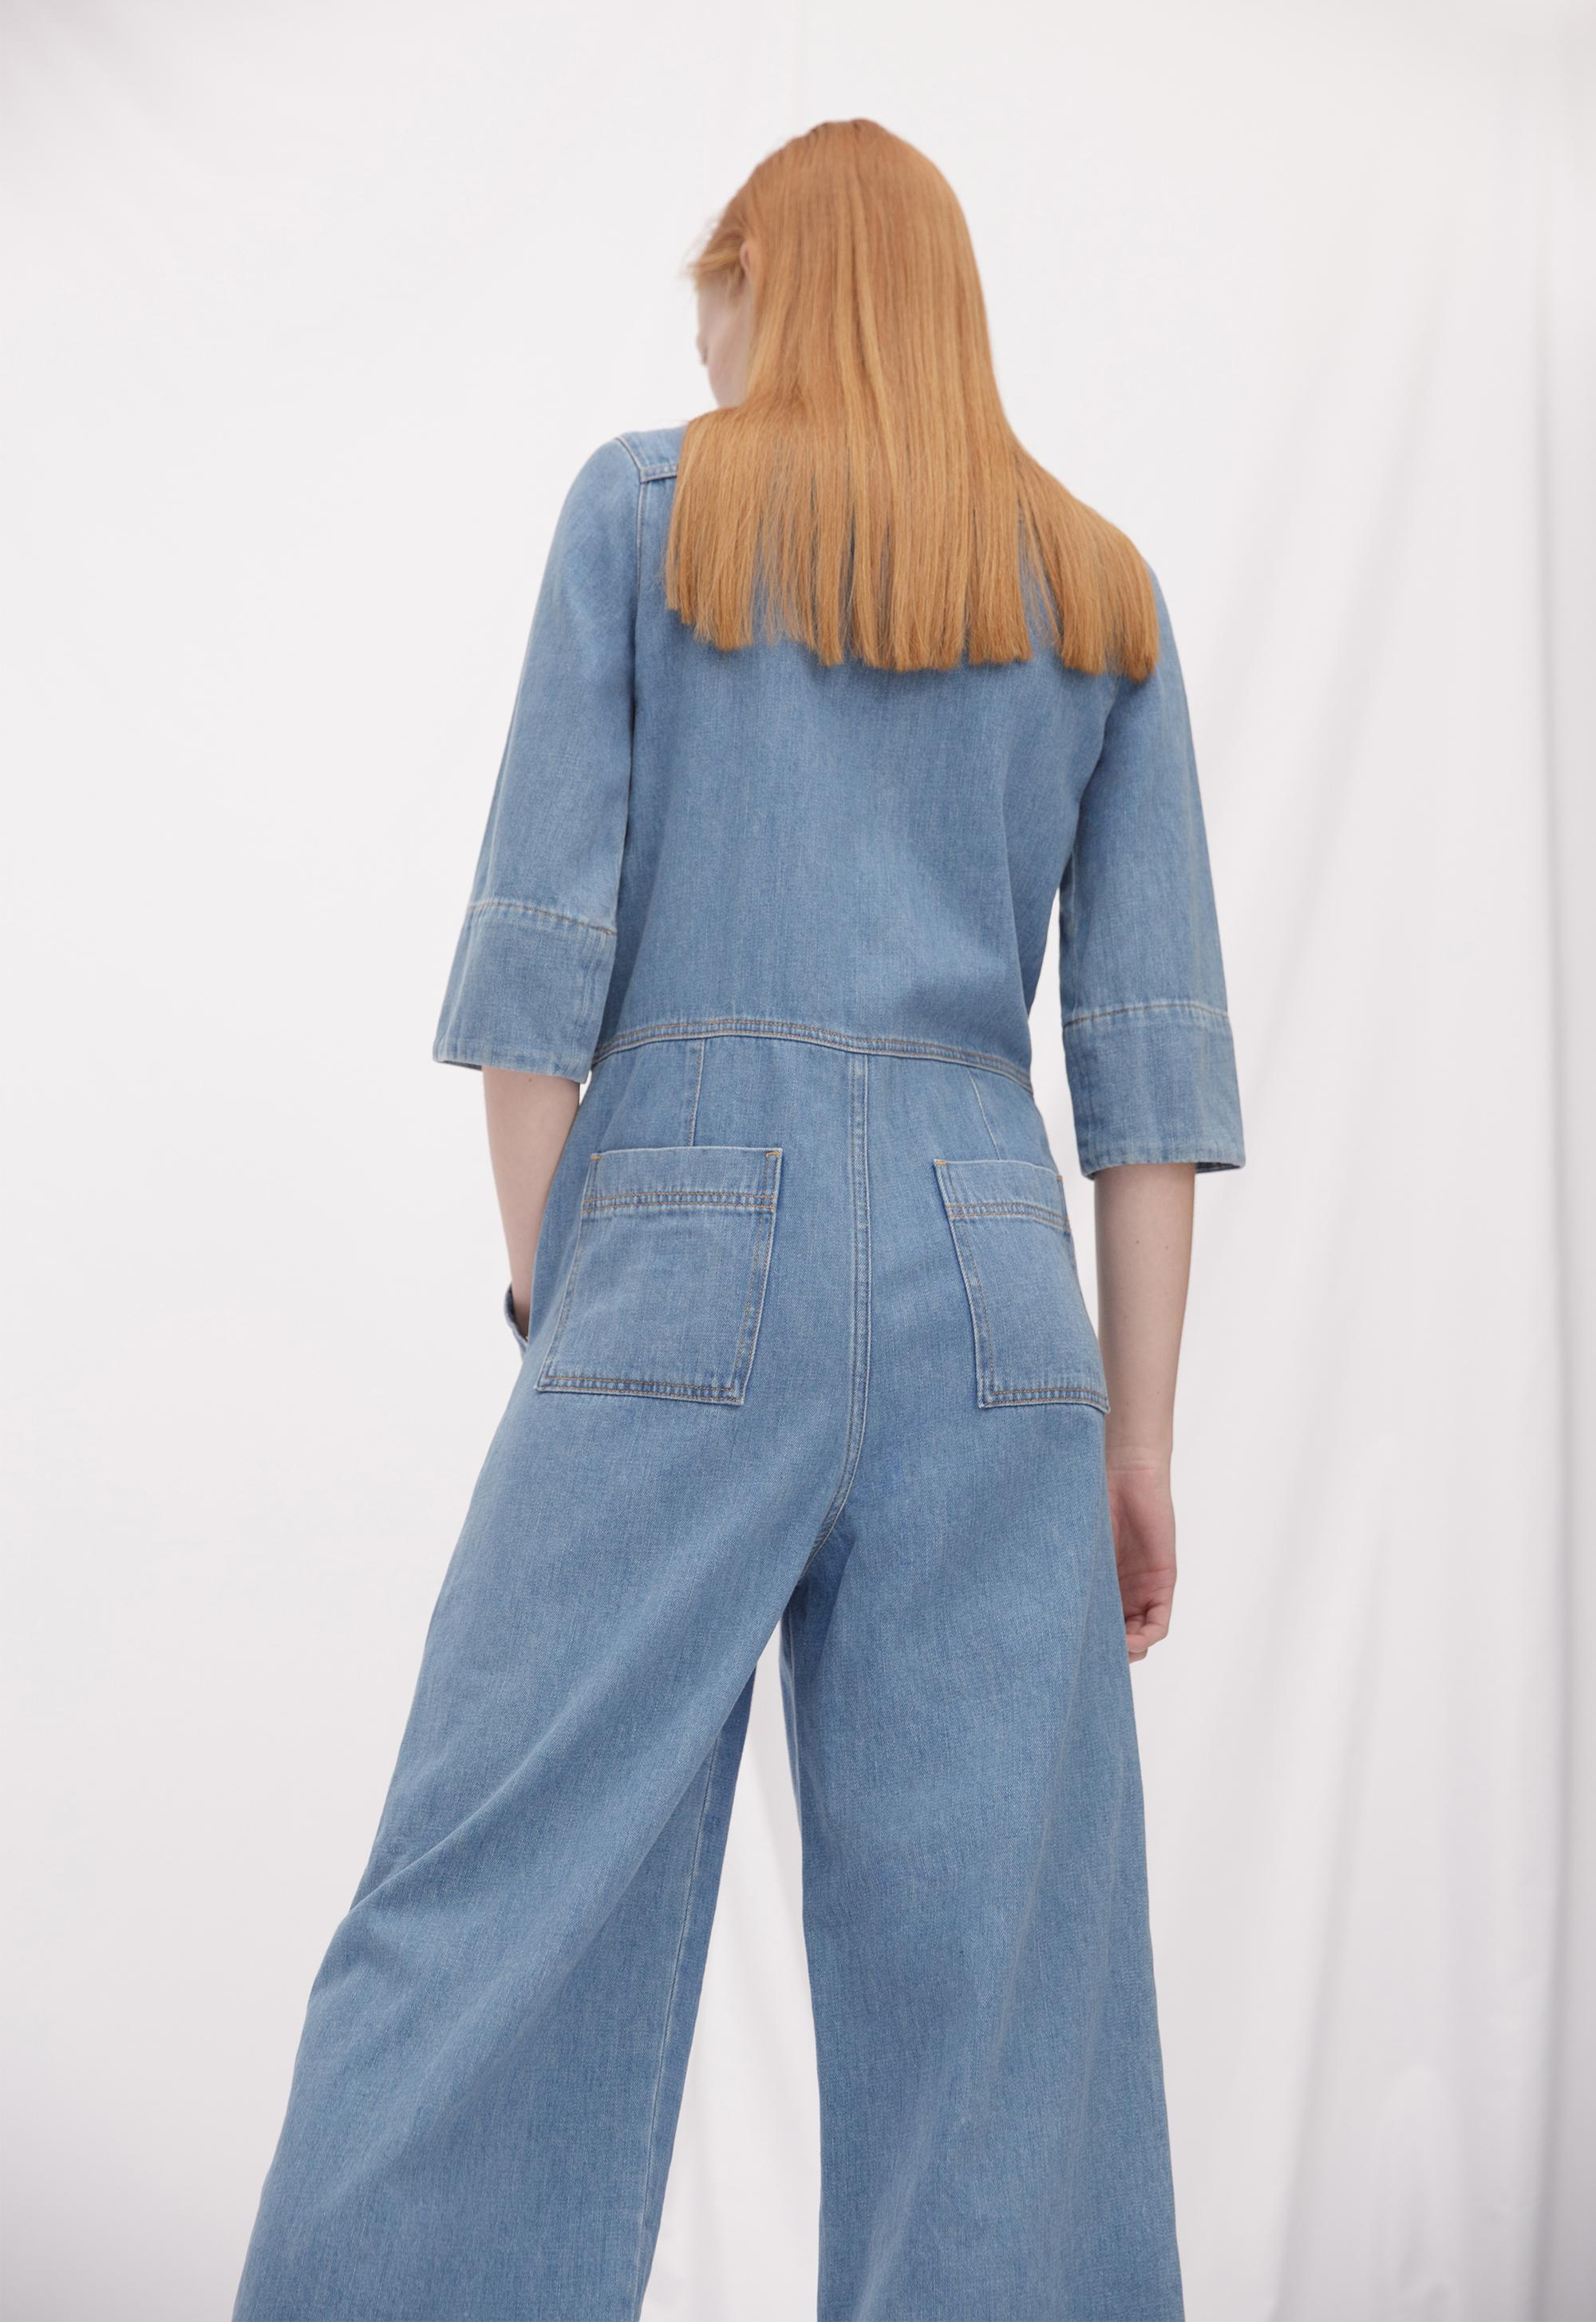 a9d5ff334d8 Mih Jeans Calman All-in-one in Blue - Lyst